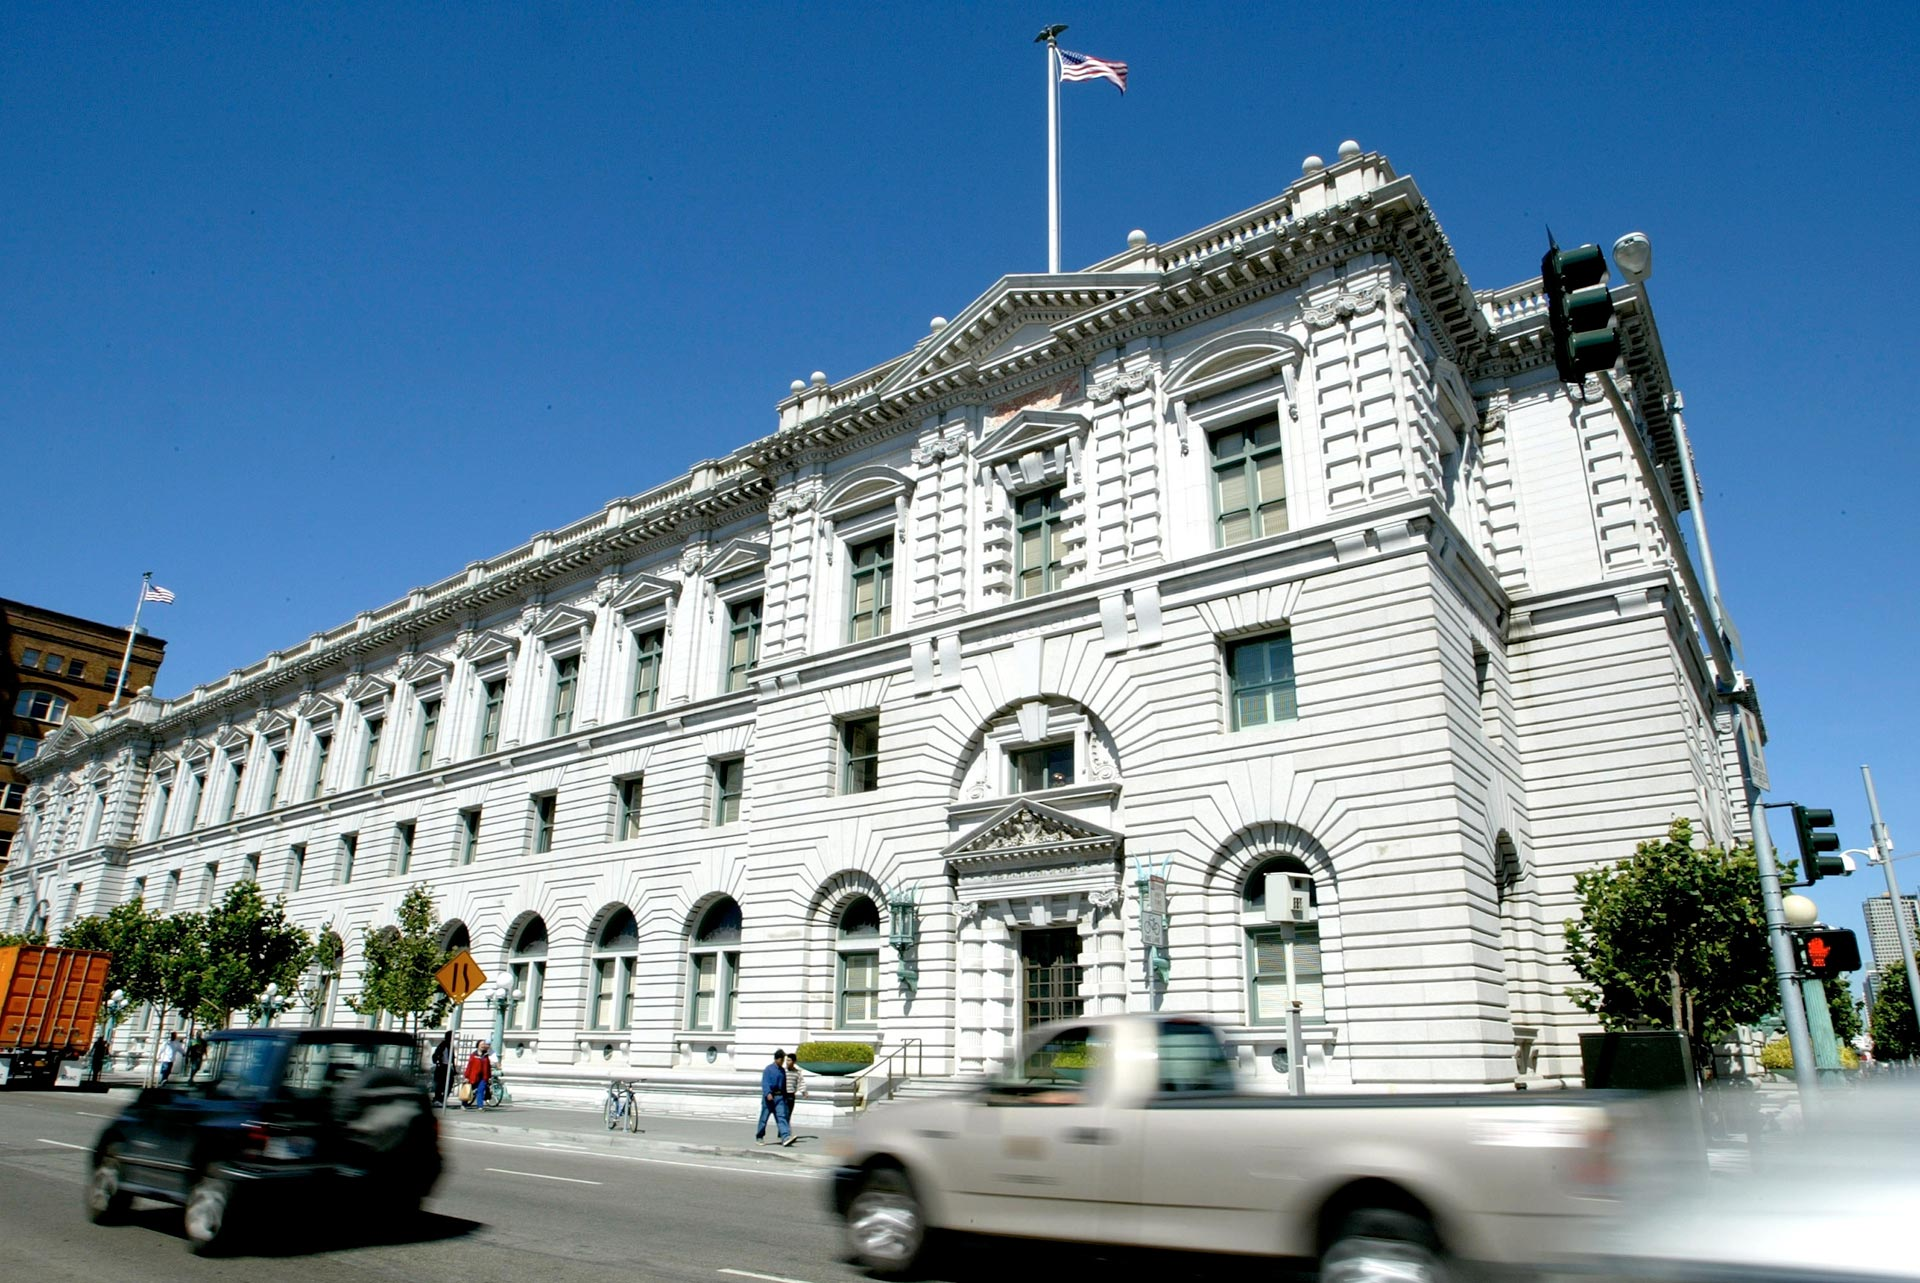 The 9th Circuit Court of Appeals in San Francisco.